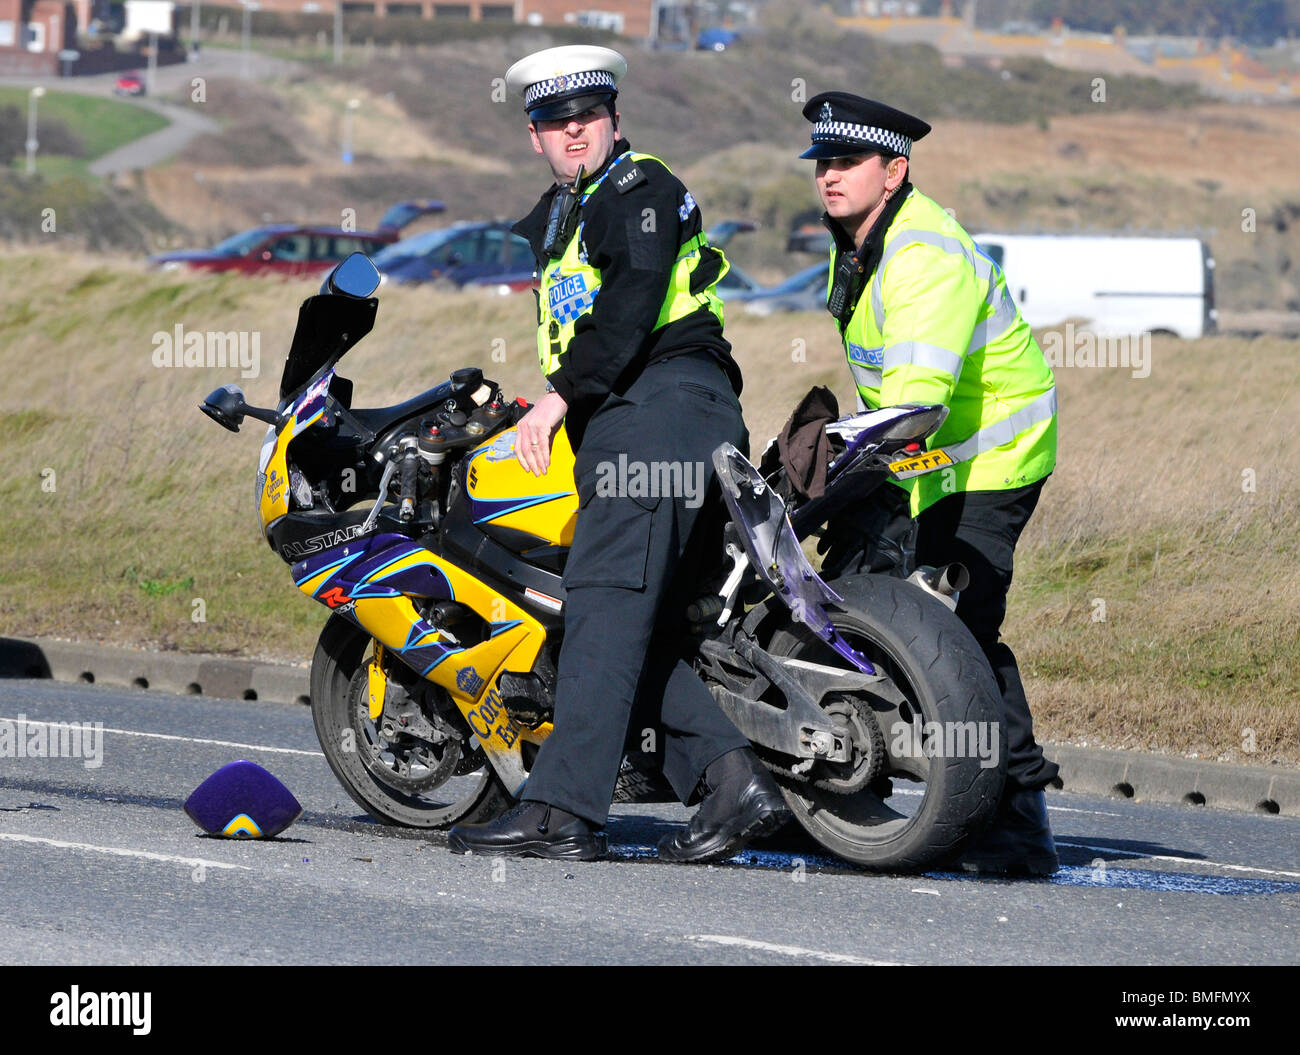 Motorcycle Crash Insurance Claim